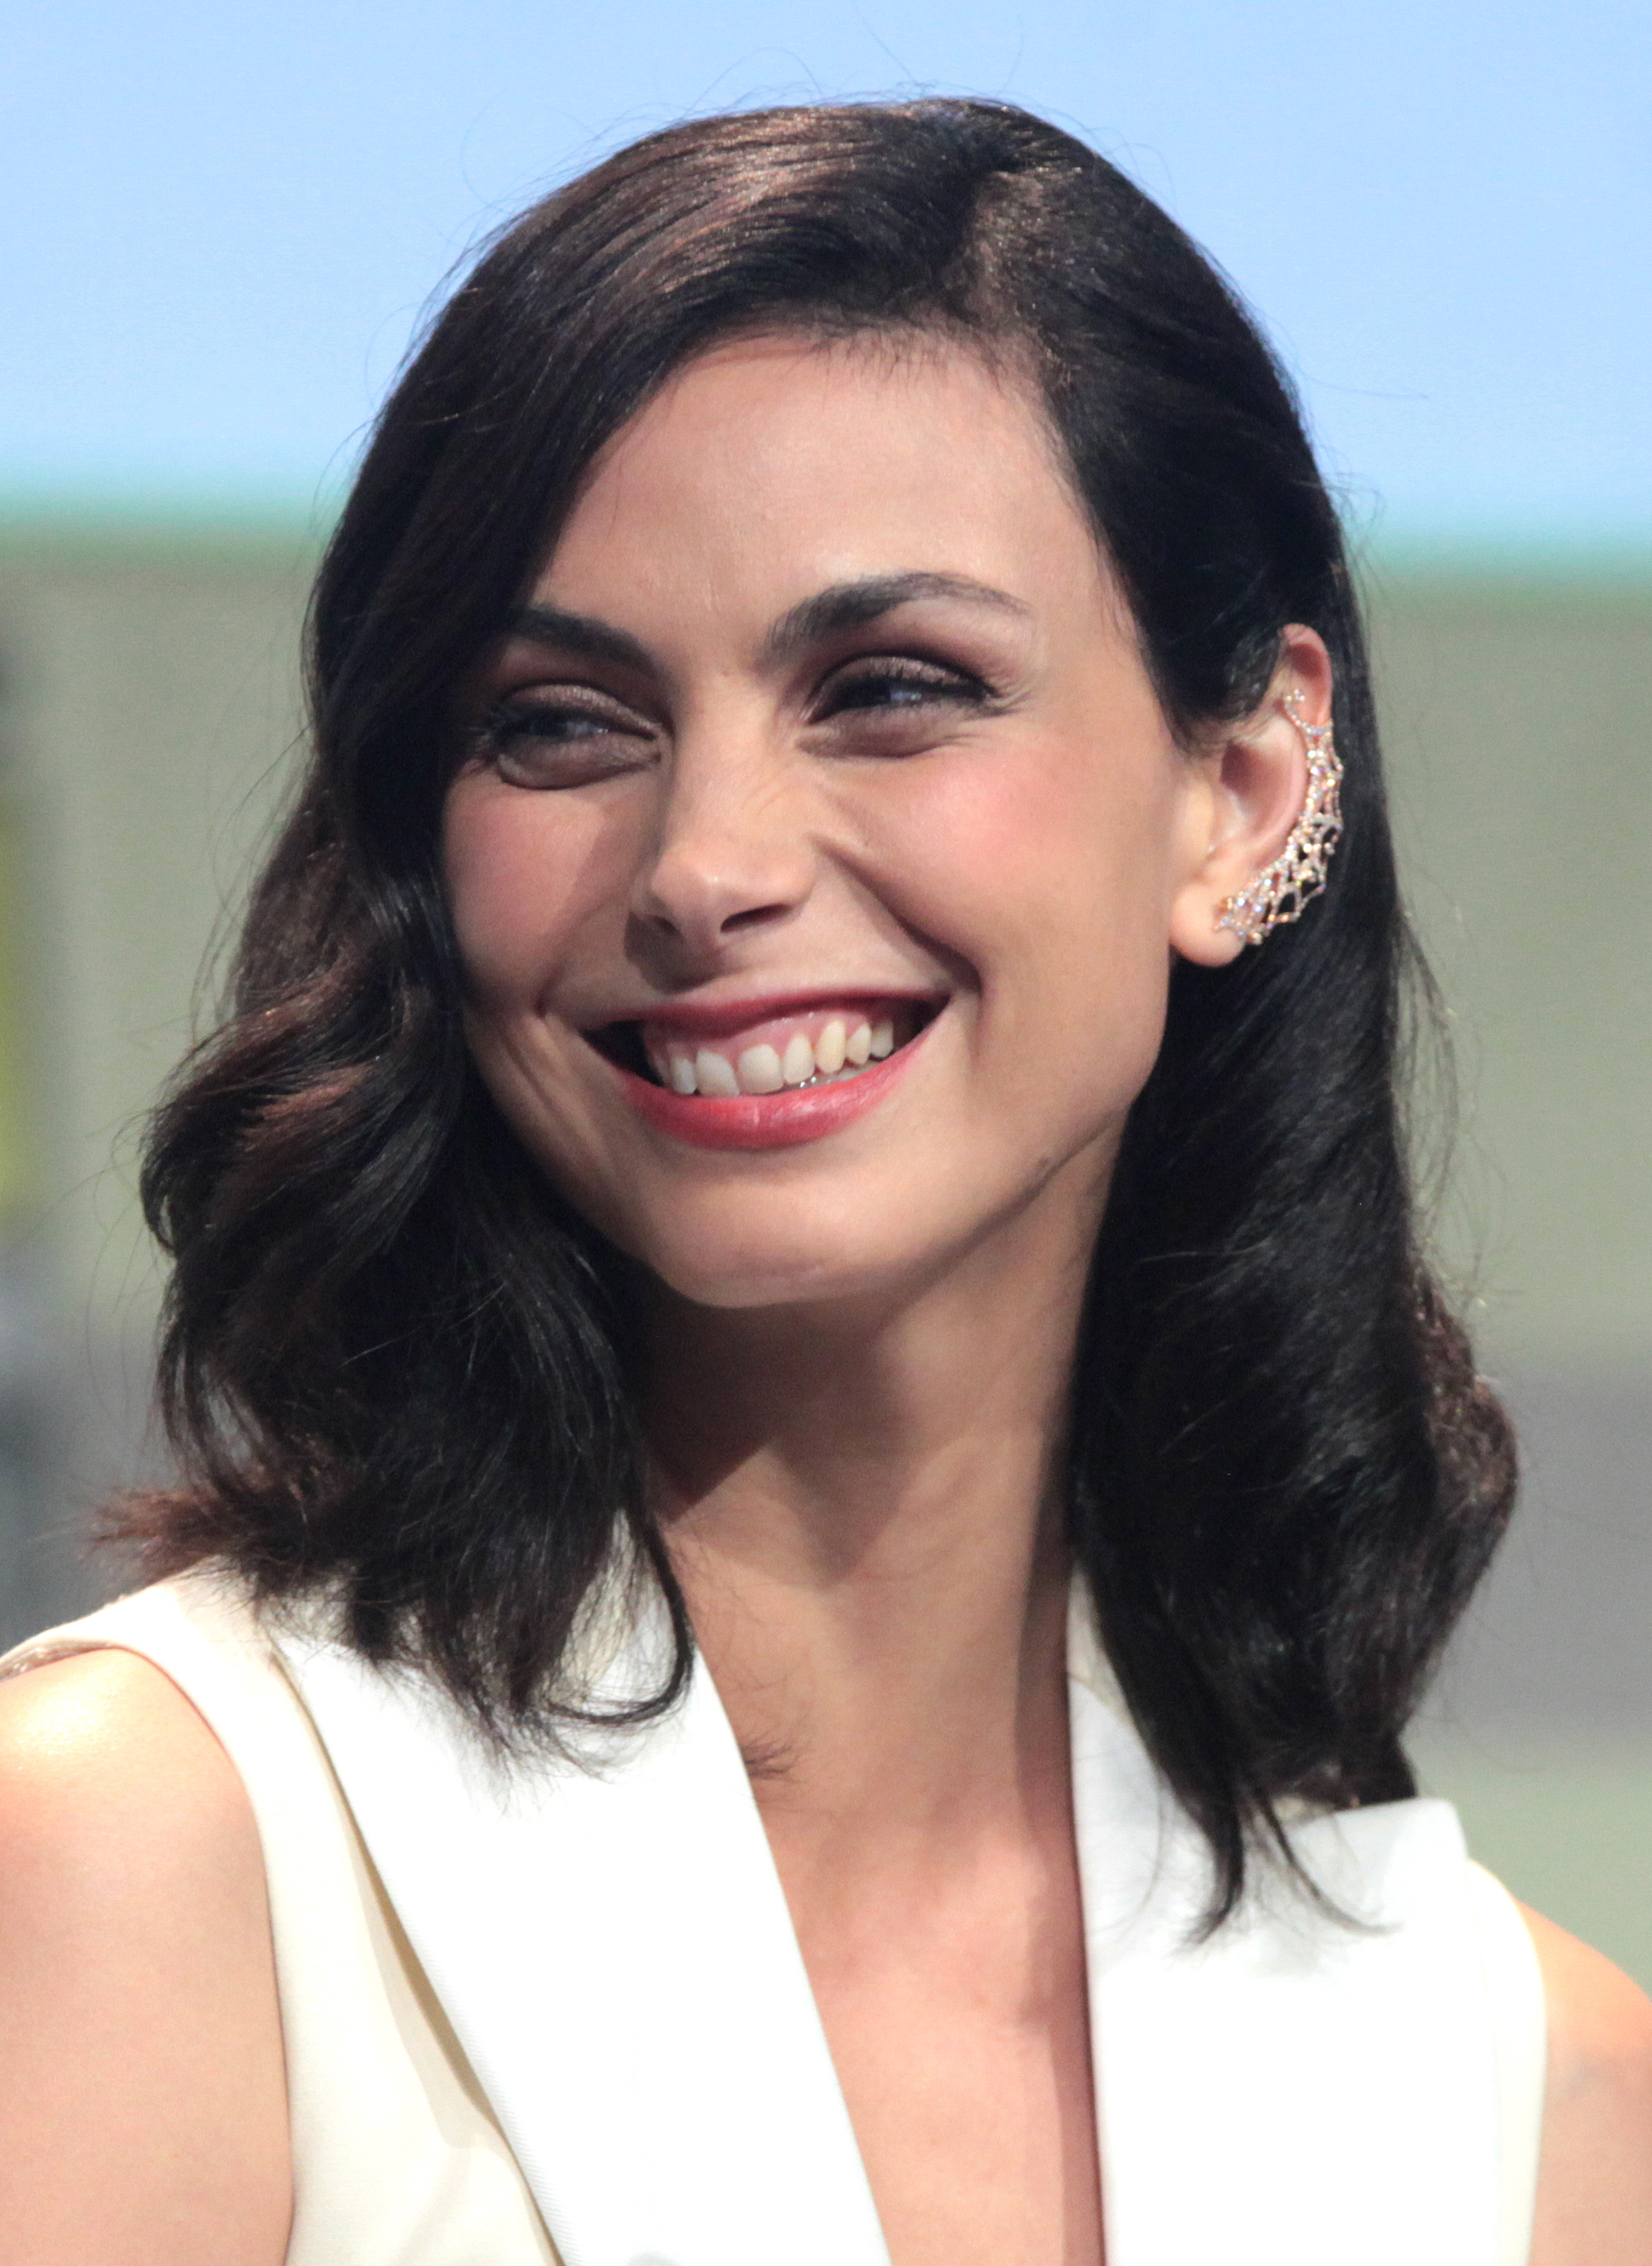 The 39-year old daughter of father Fernando Baccarin and mother Vera Setta Morena Baccarin in 2018 photo. Morena Baccarin earned a  million dollar salary - leaving the net worth at 2 million in 2018